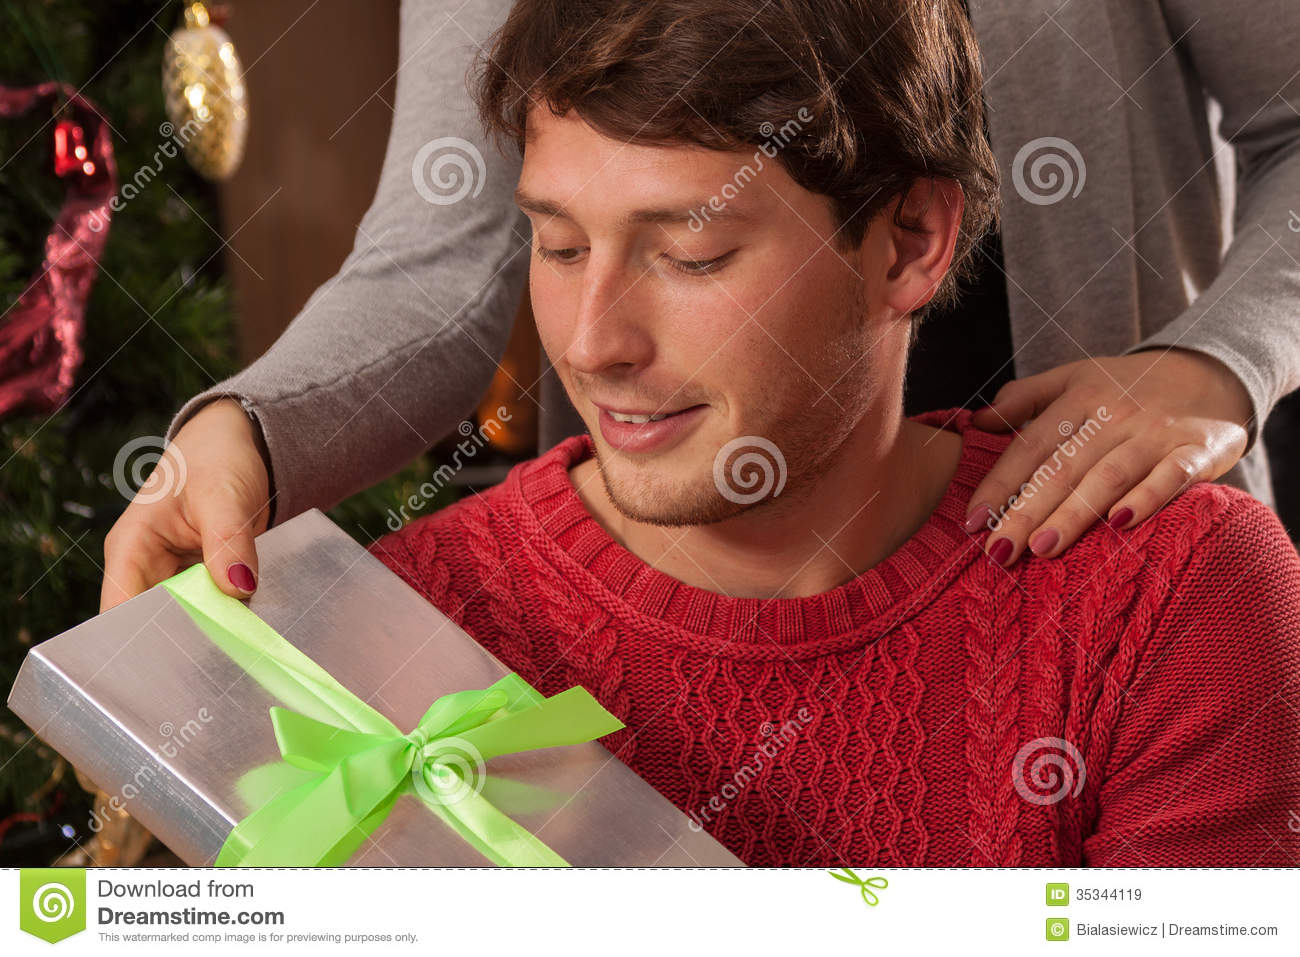 Christmas Gift From Wife To Husband Stock Image - Image of portrait ...